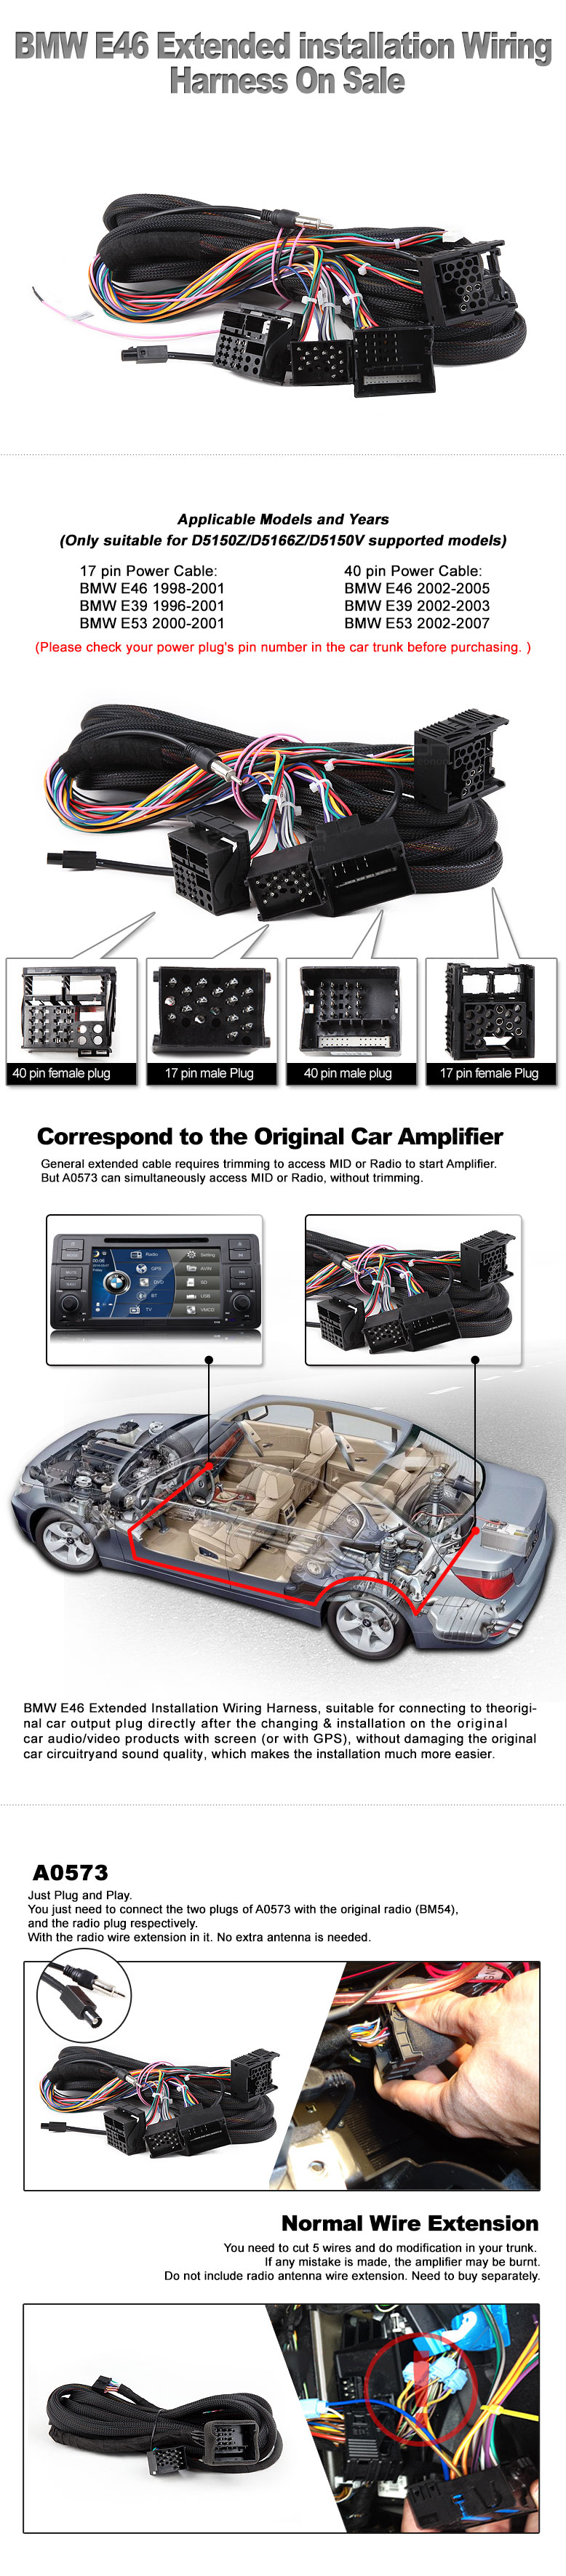 Bmw E46 Gps Wiring Harness Electrical Diagrams Eonon D5150 Diagram D5150v Car Dvd Specific For Connectors